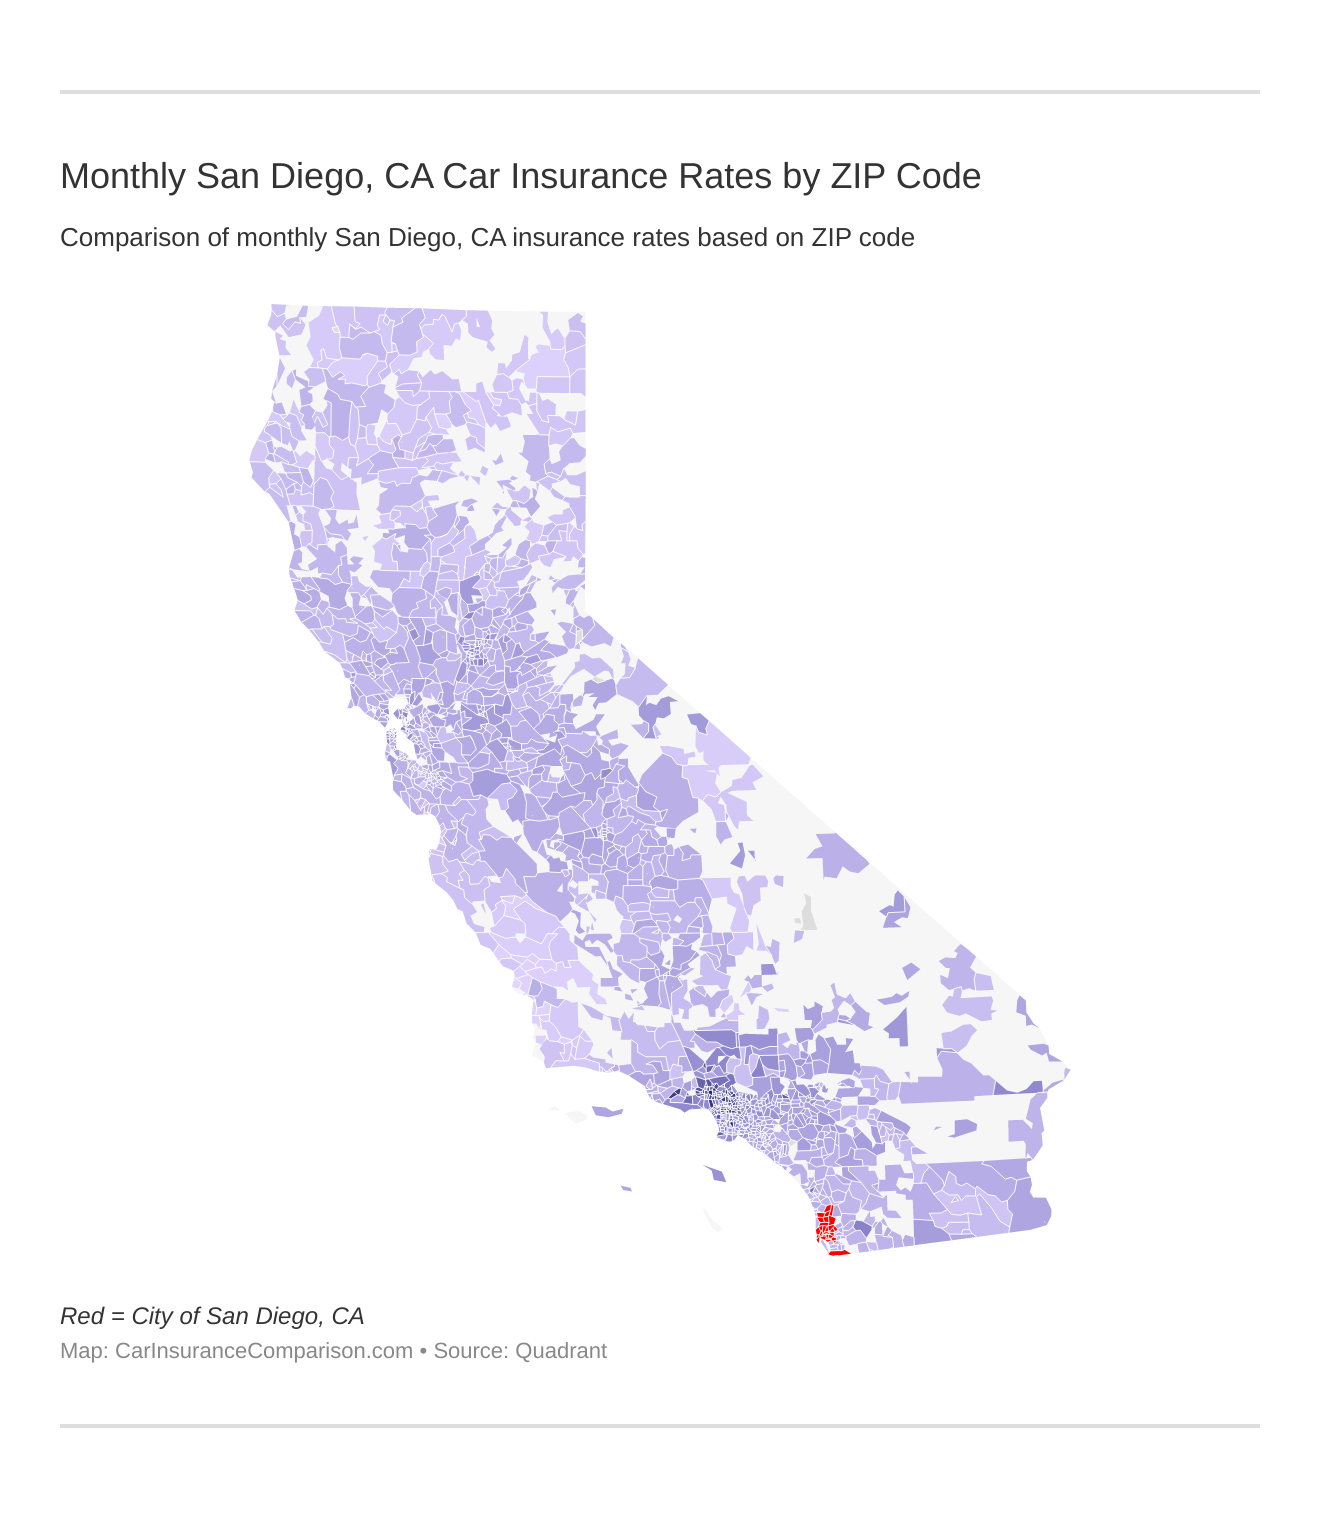 Monthly San Diego, CA Car Insurance Rates by ZIP Code